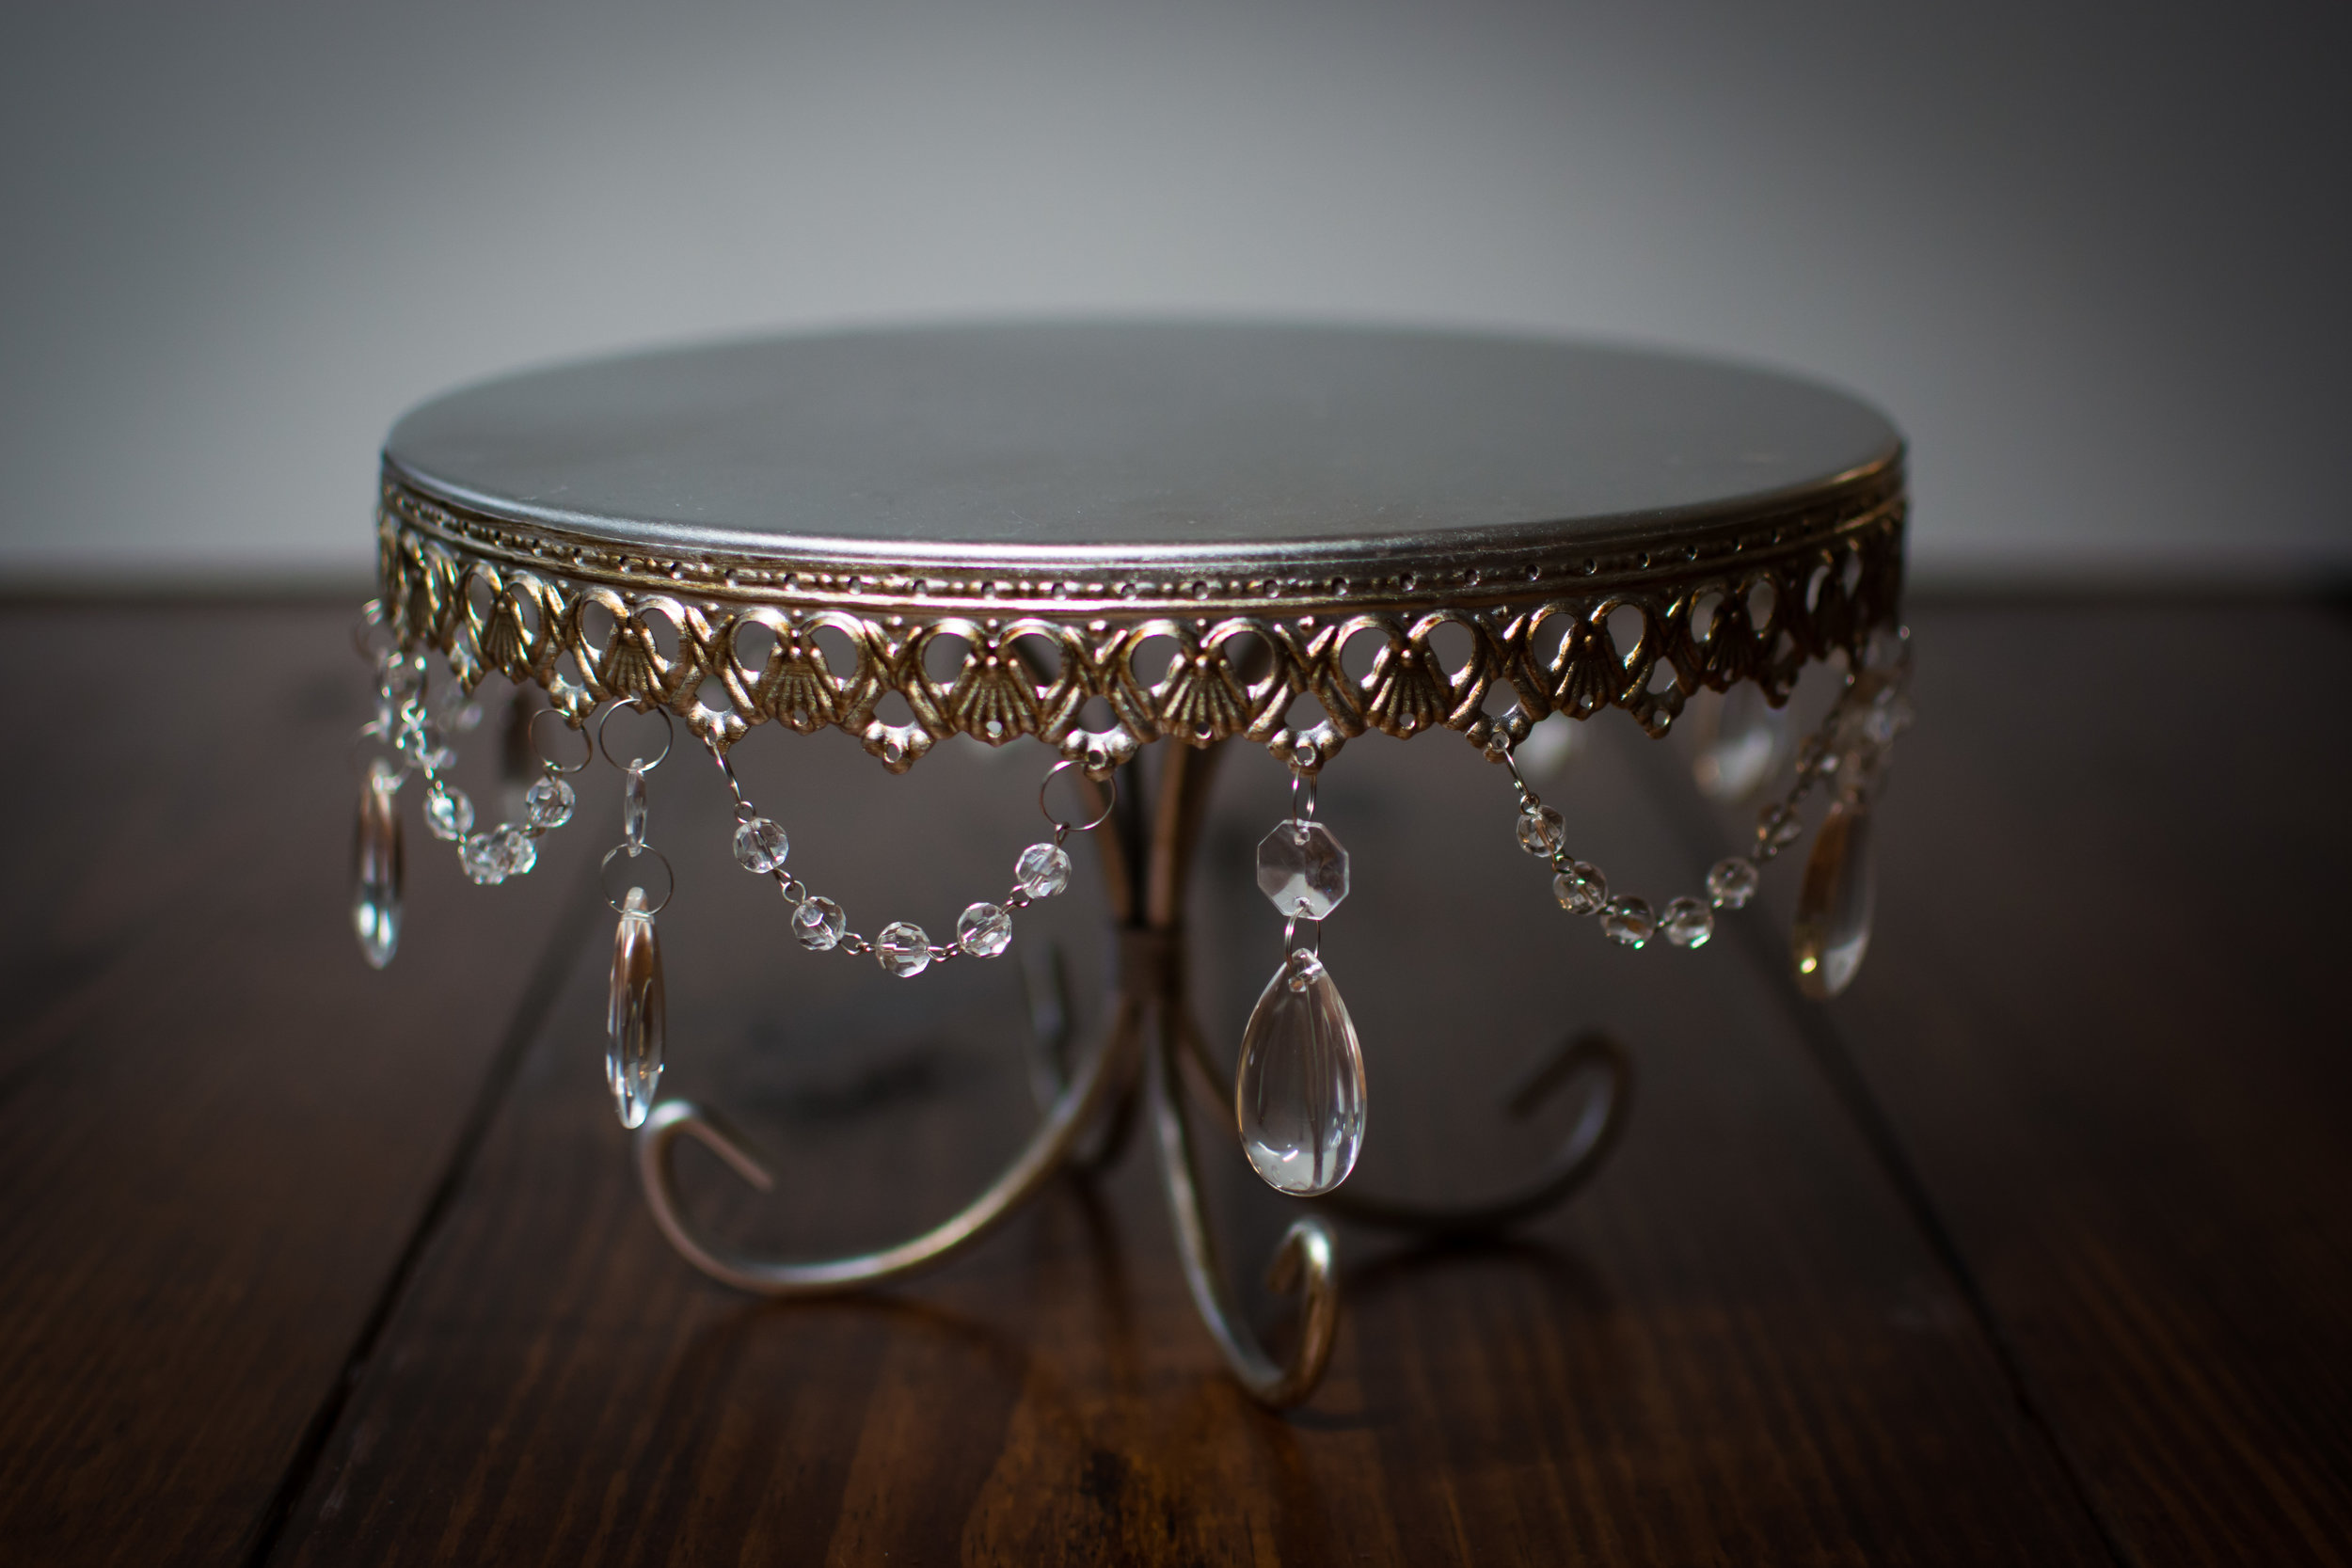 decorative Cake Stand   Price: $12.00  Inquire about quantity and availability.